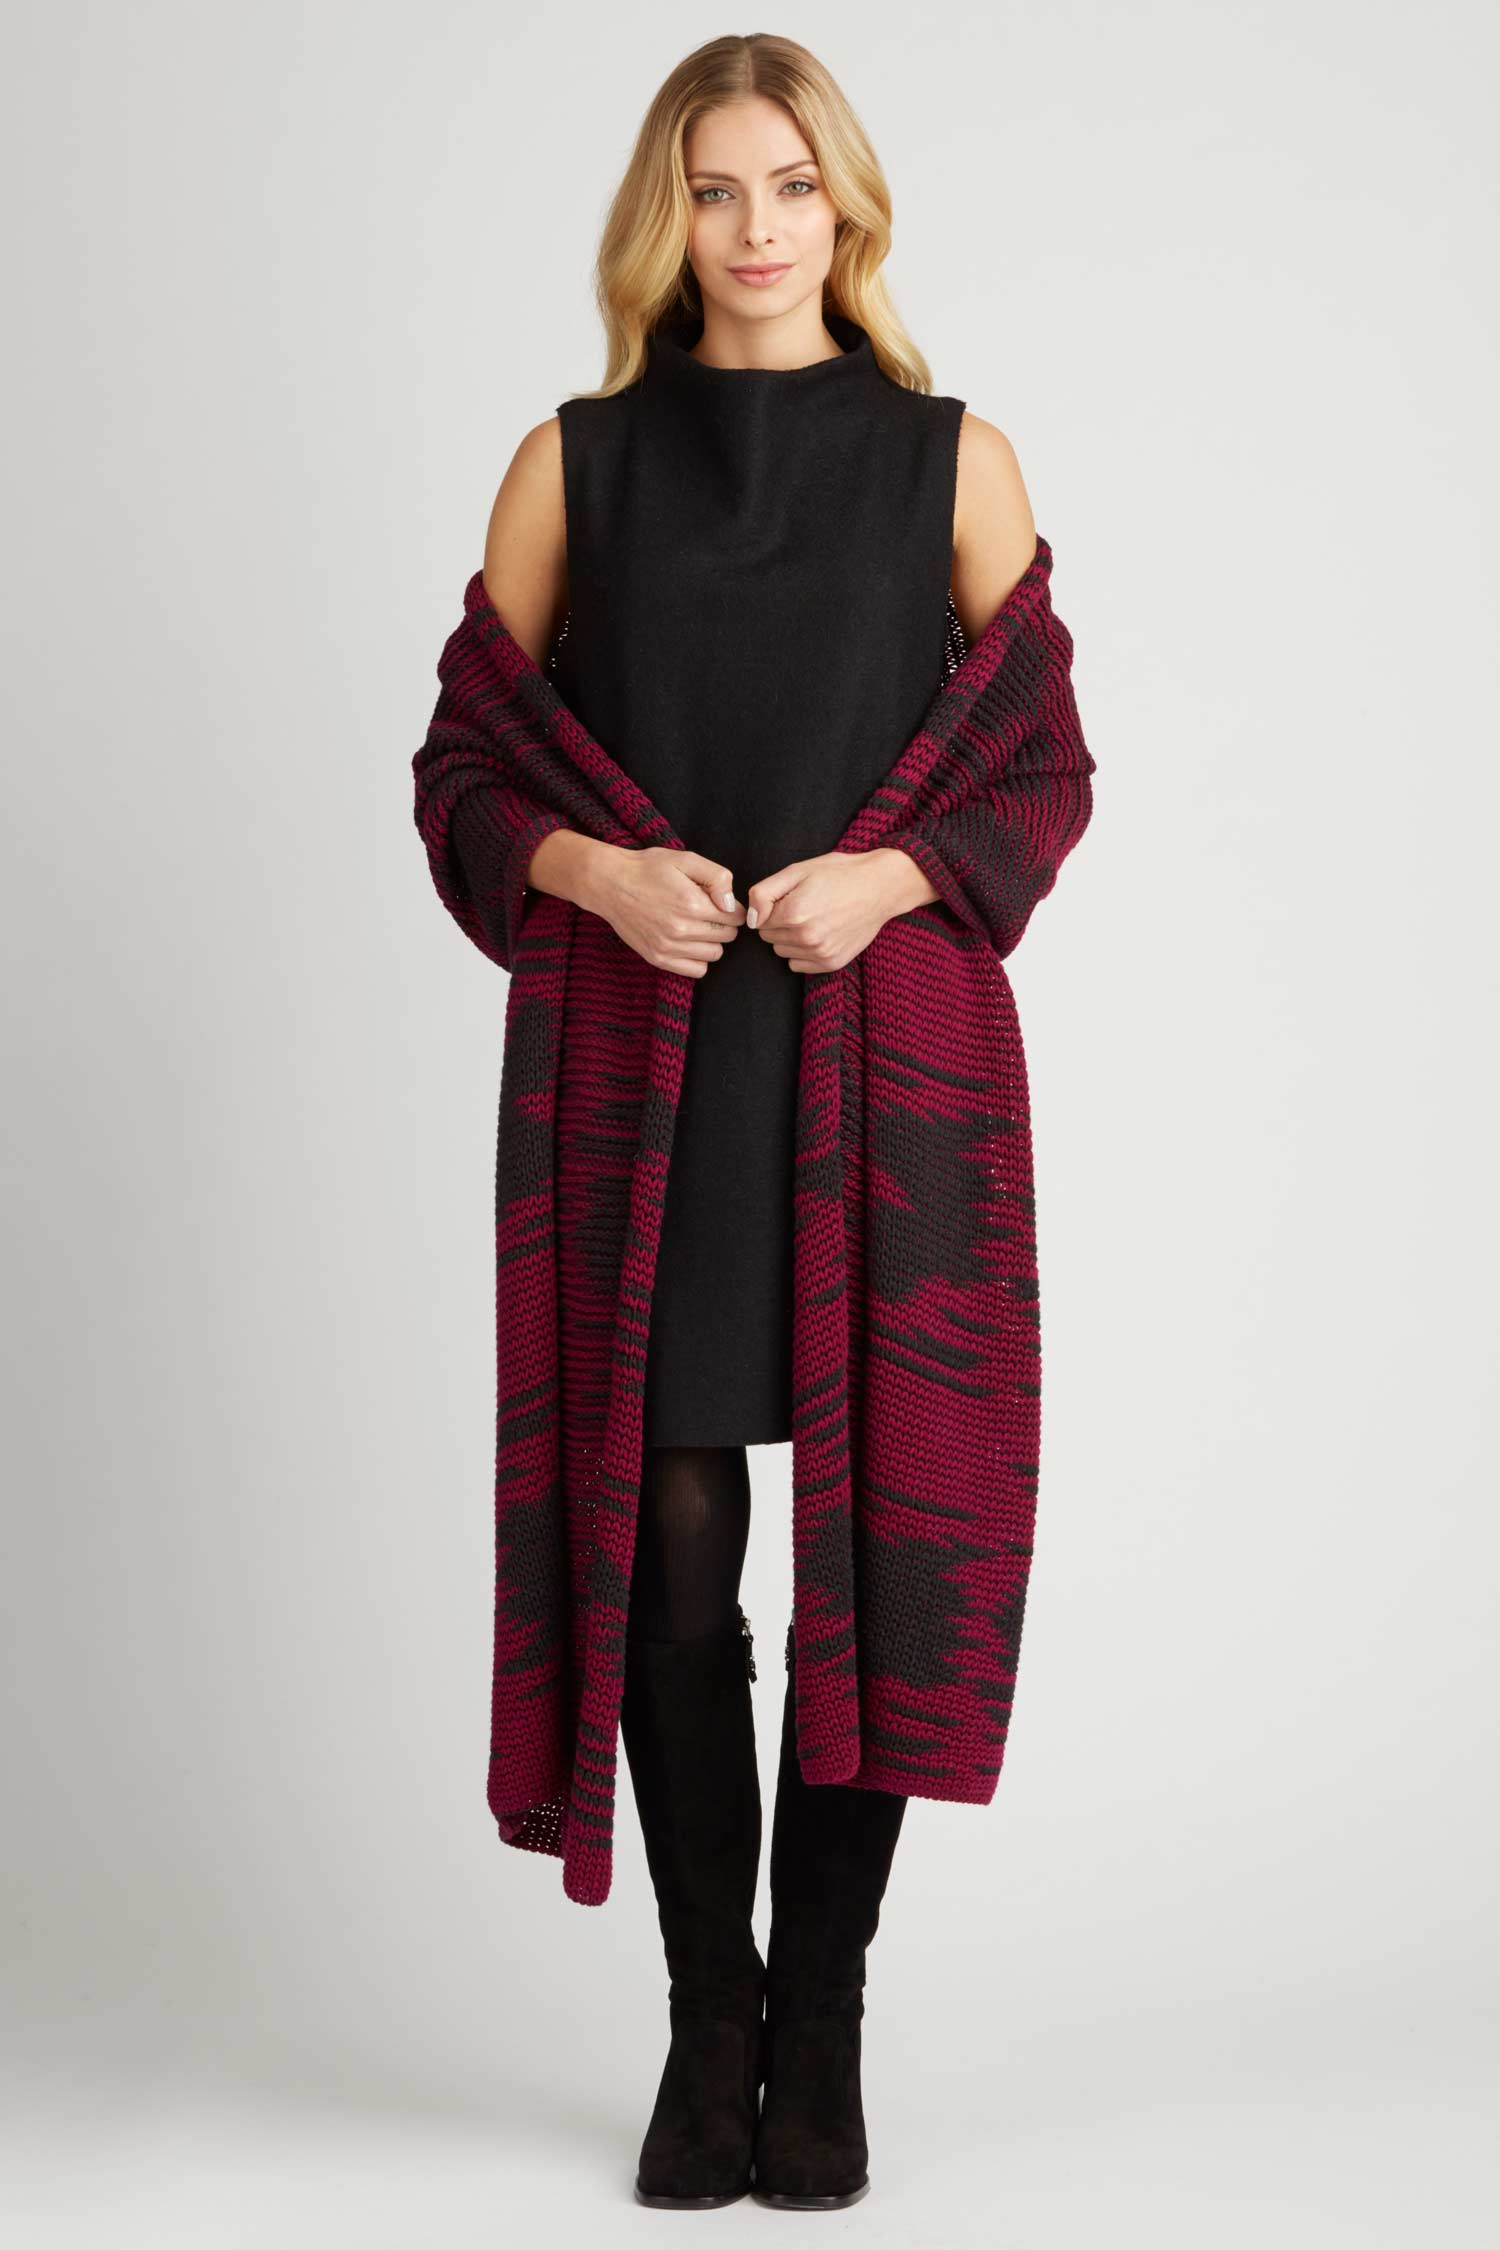 Womens Winter Shawl Wrap - Handcrafted Knit in Red and Black